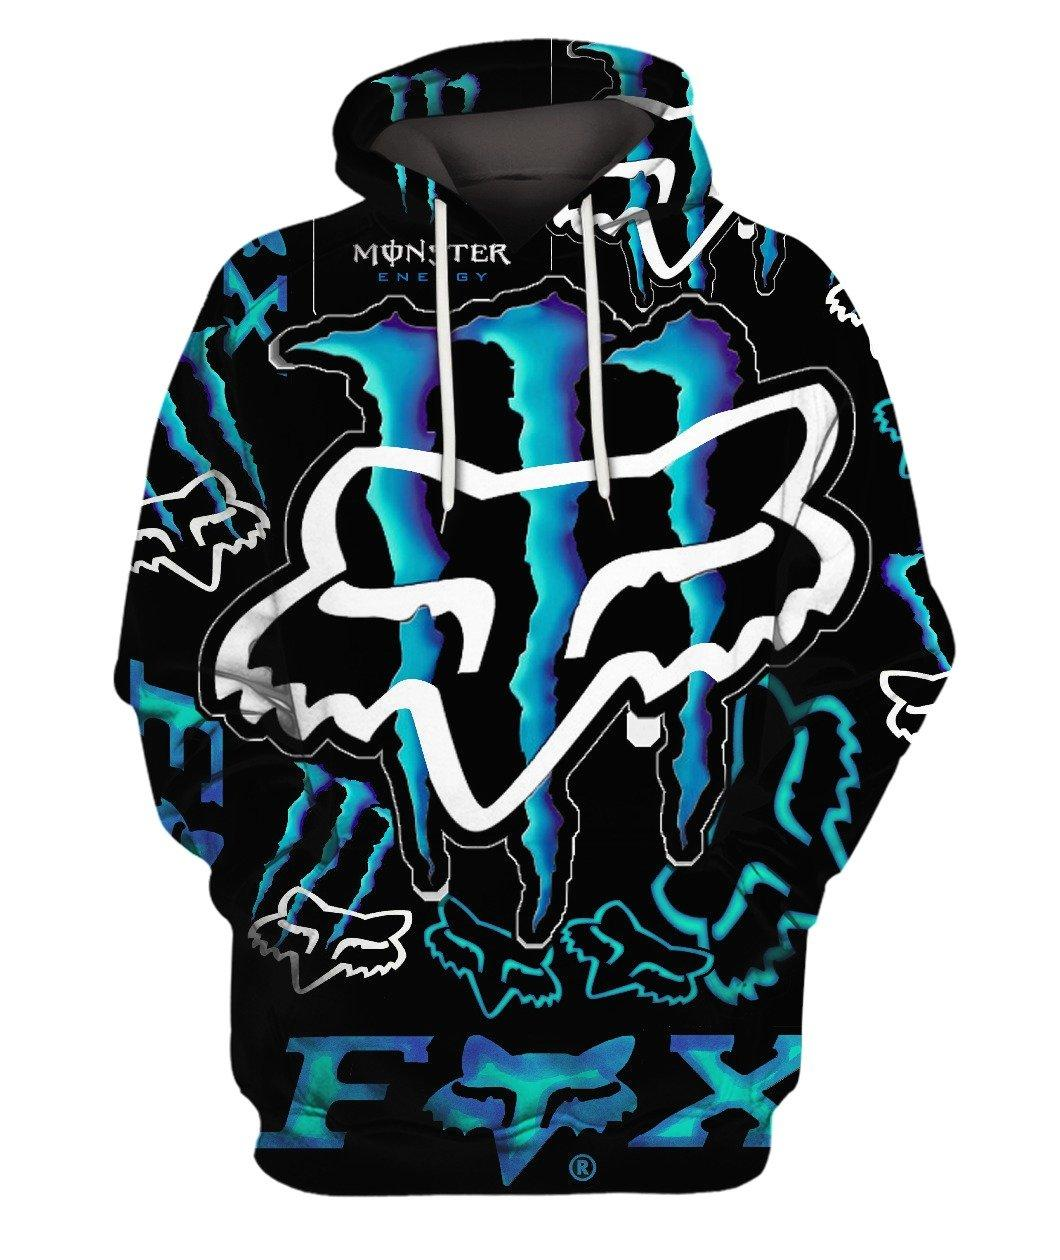 Fox Monster Energy Blue 3d Full Print 3d Graphic Printed Tshirt Hoodie Up To 5xl